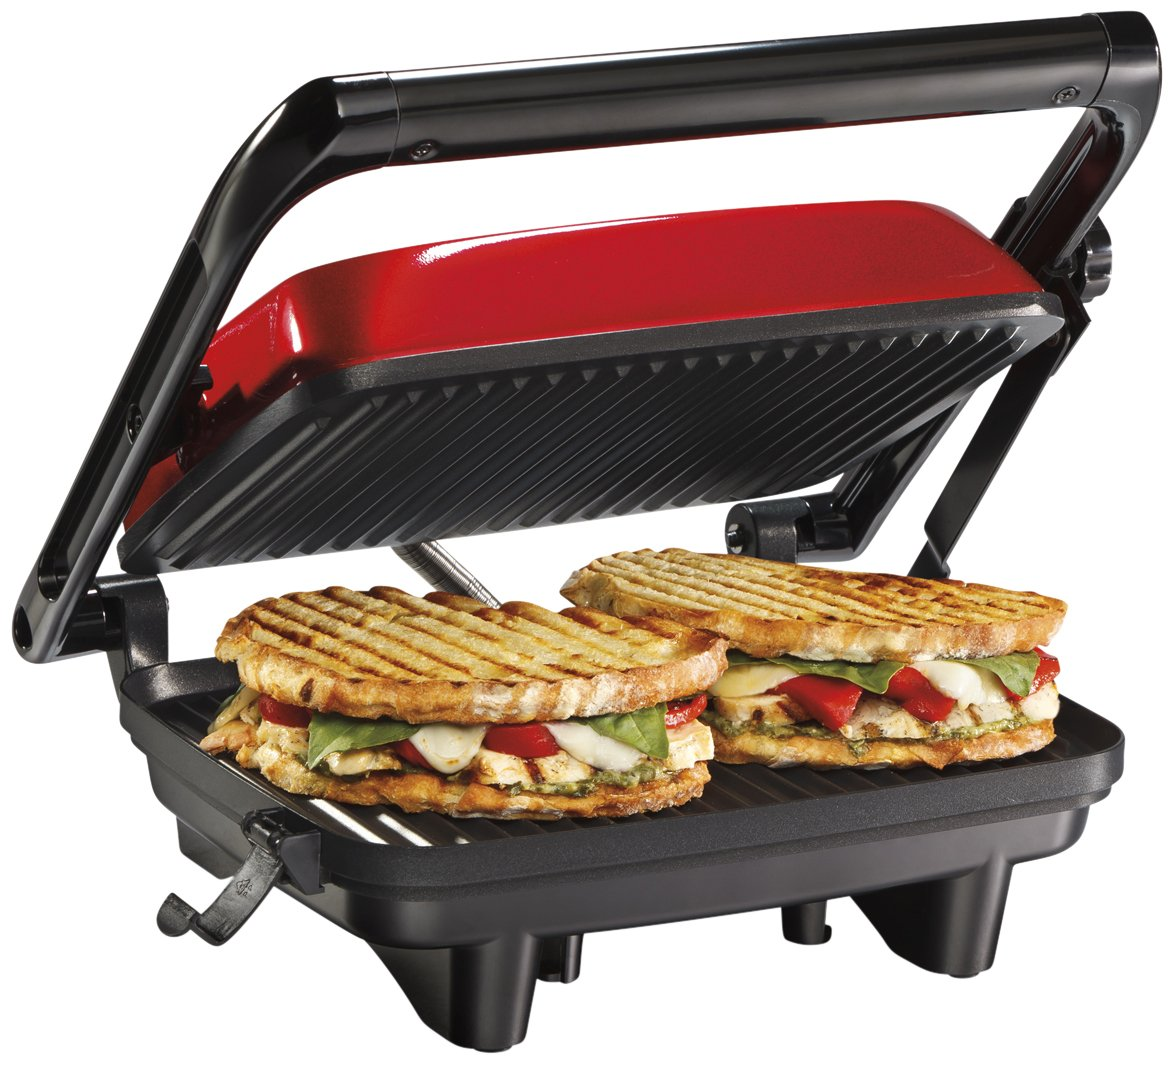 Top 10 Best Sandwich Makers Reviews in 2020 5